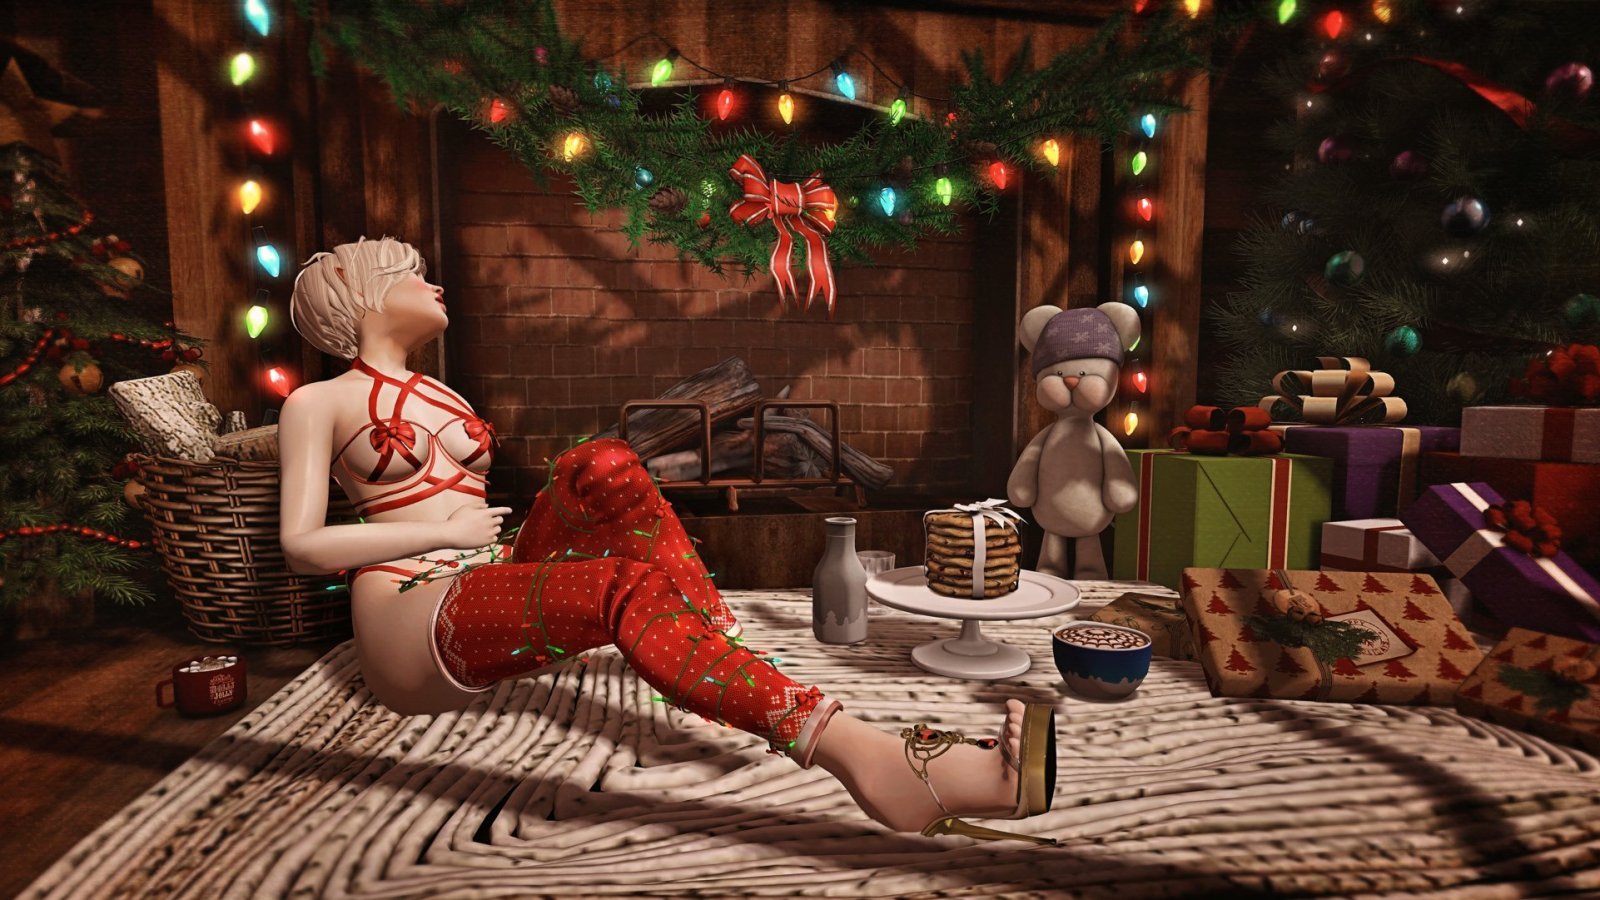 Santa baby, hurry down the chimney tonight….